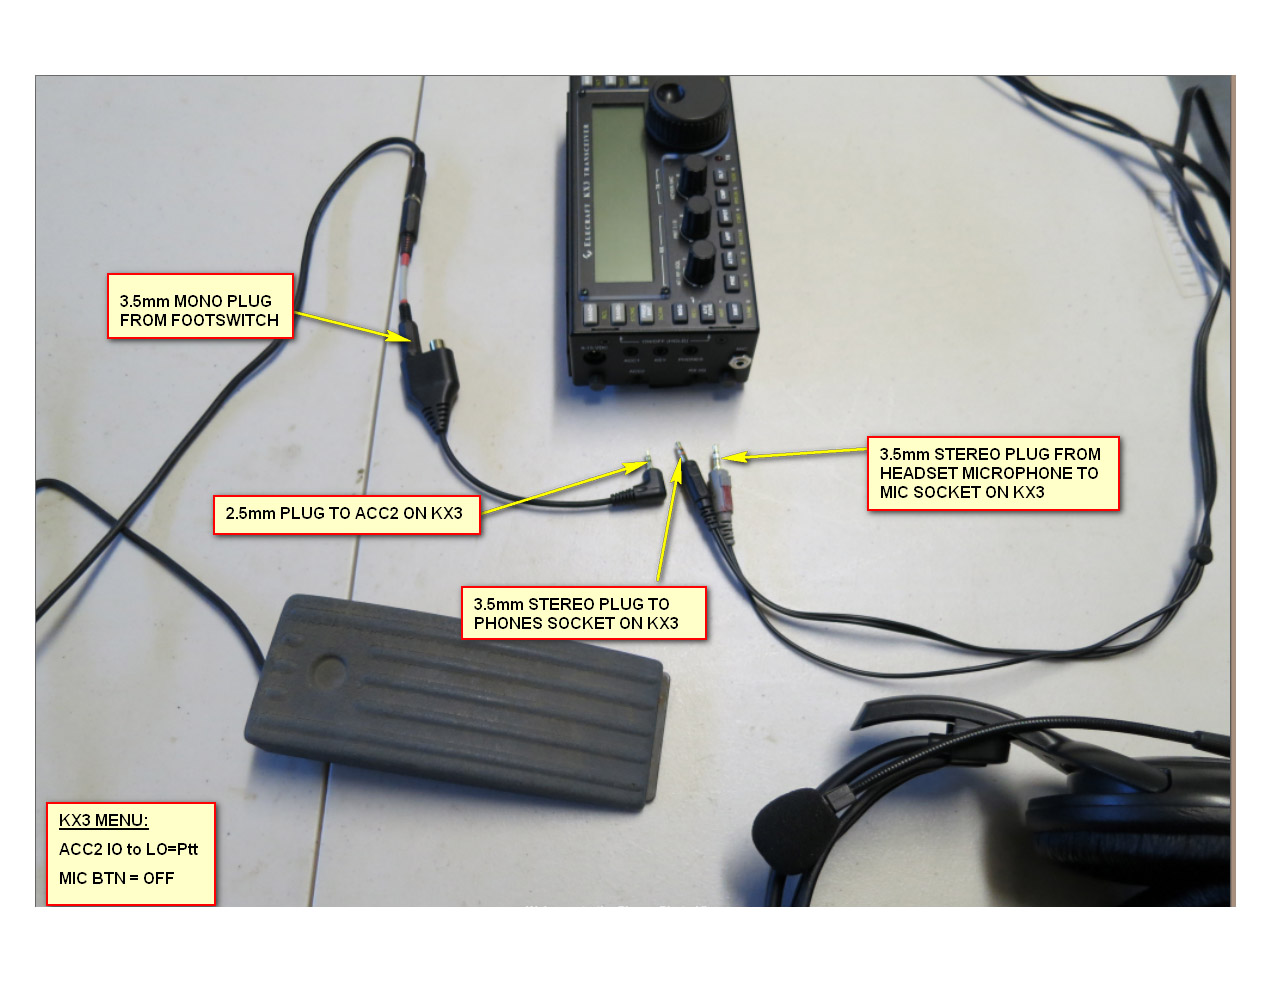 small resolution of wiring a footswitch for use with a computer type headset on the kx3